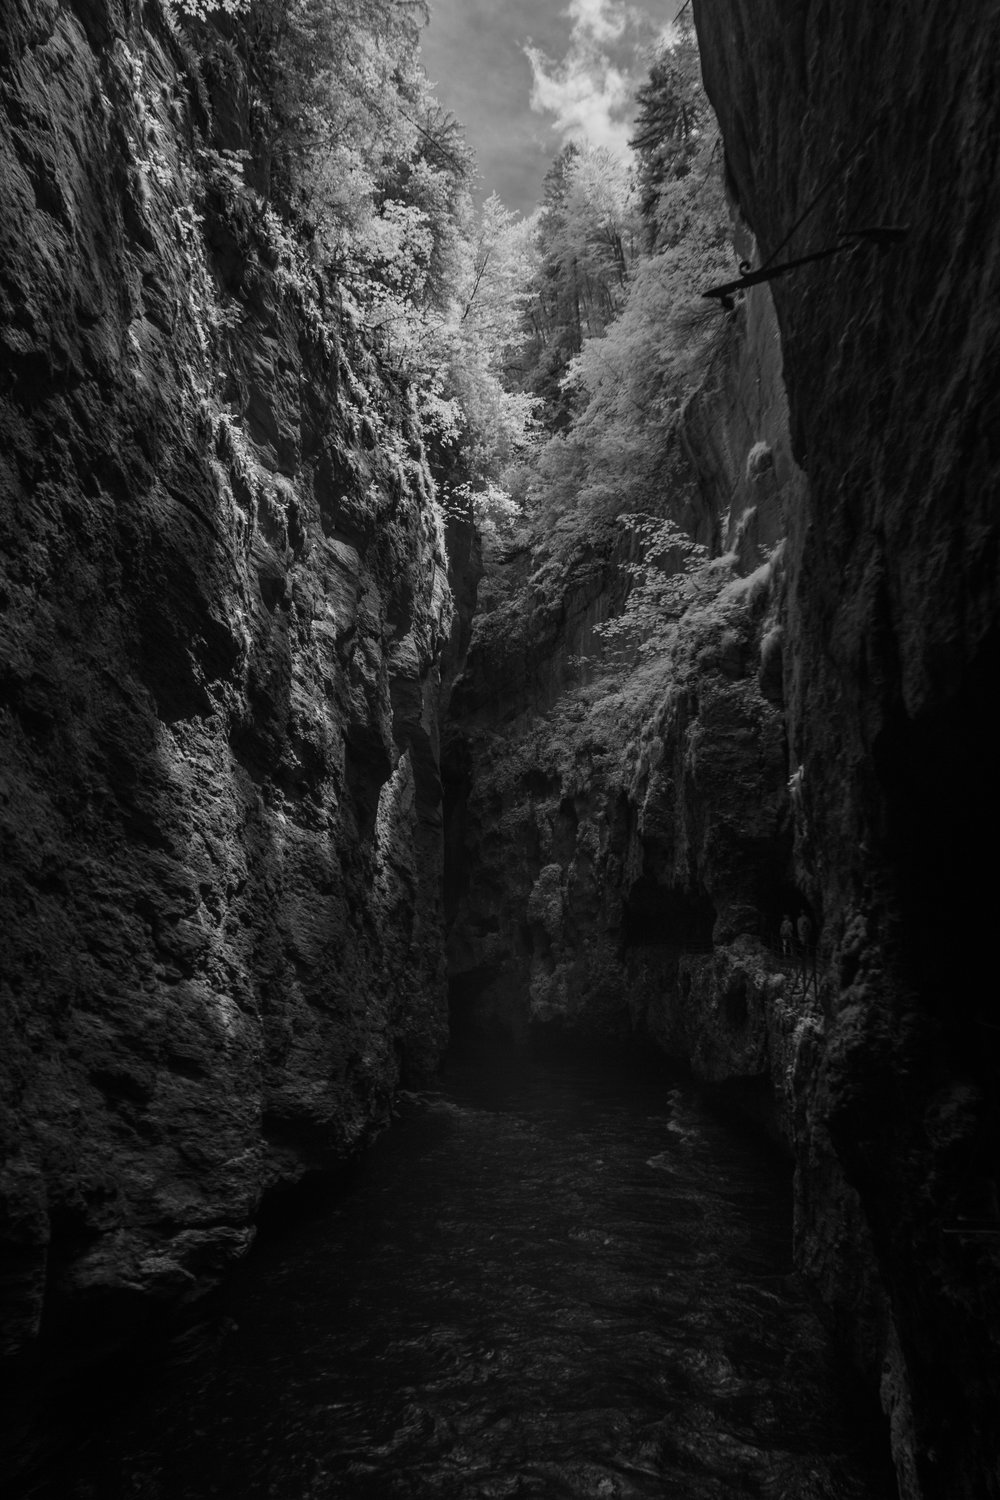 The Aareschlucht